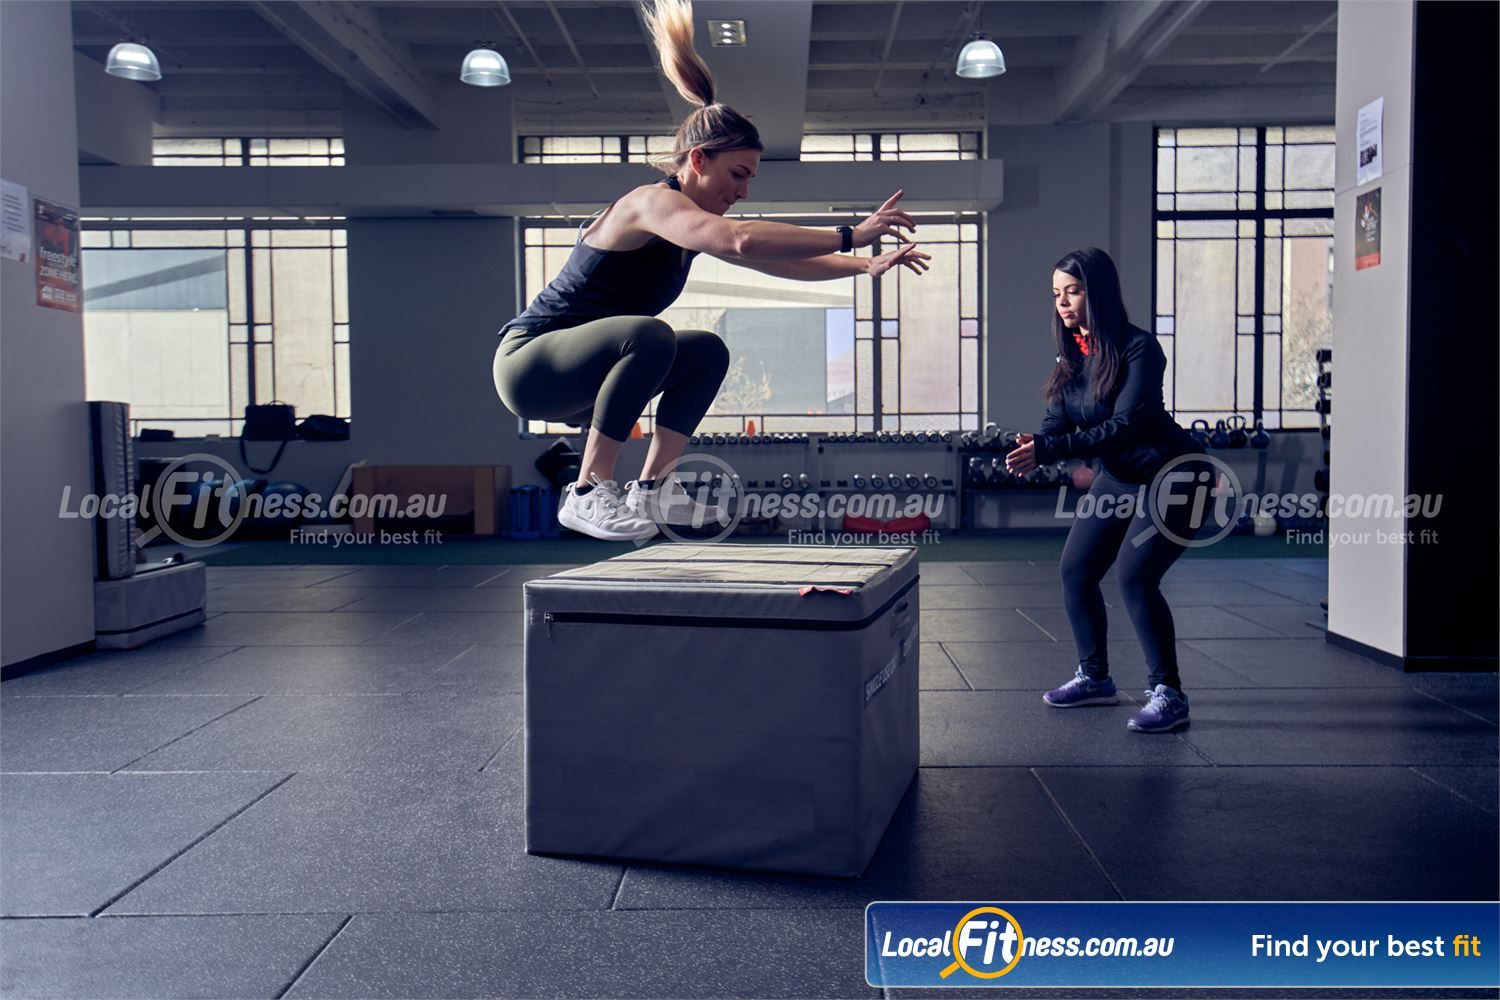 Fitness First Deakin Get into plyometric box jumps in our freestyle training area.